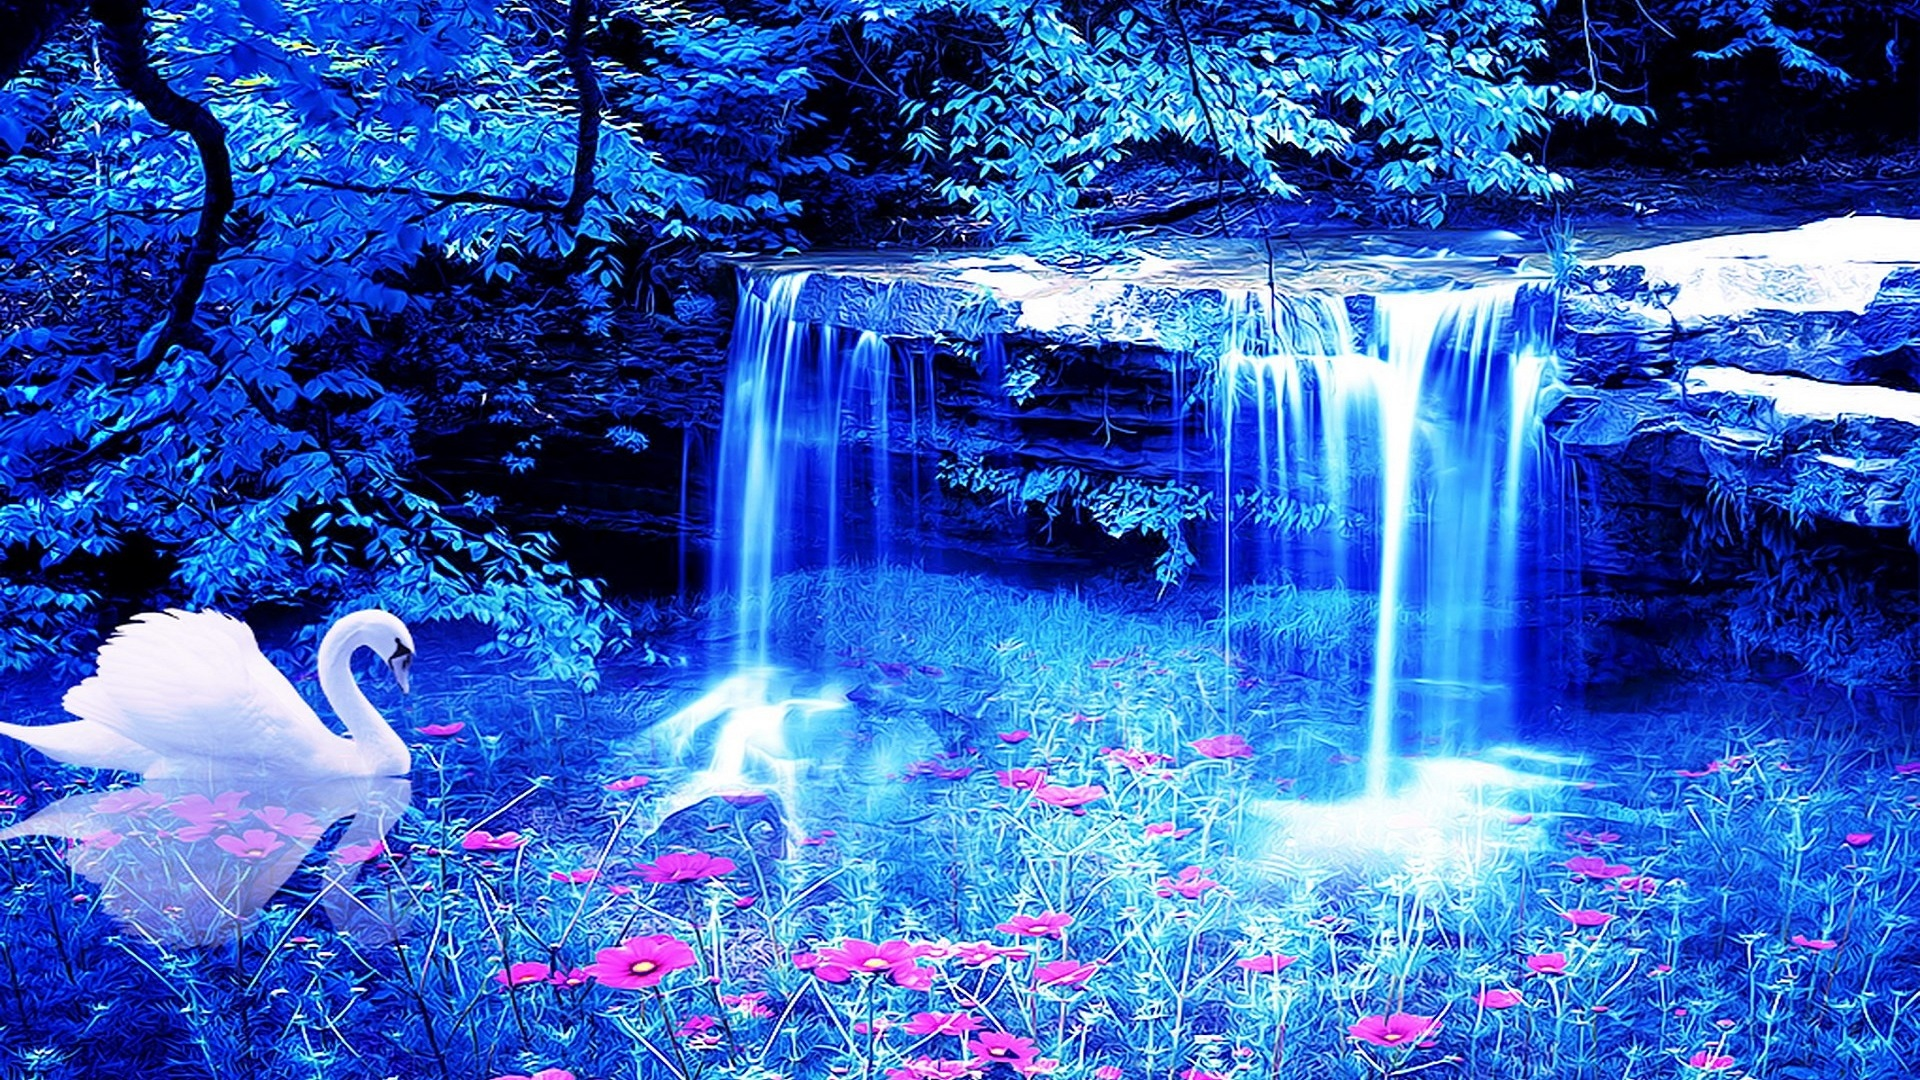 beautiful-waterfalls-hd-wallpaper-background-free-for-desktop - hd